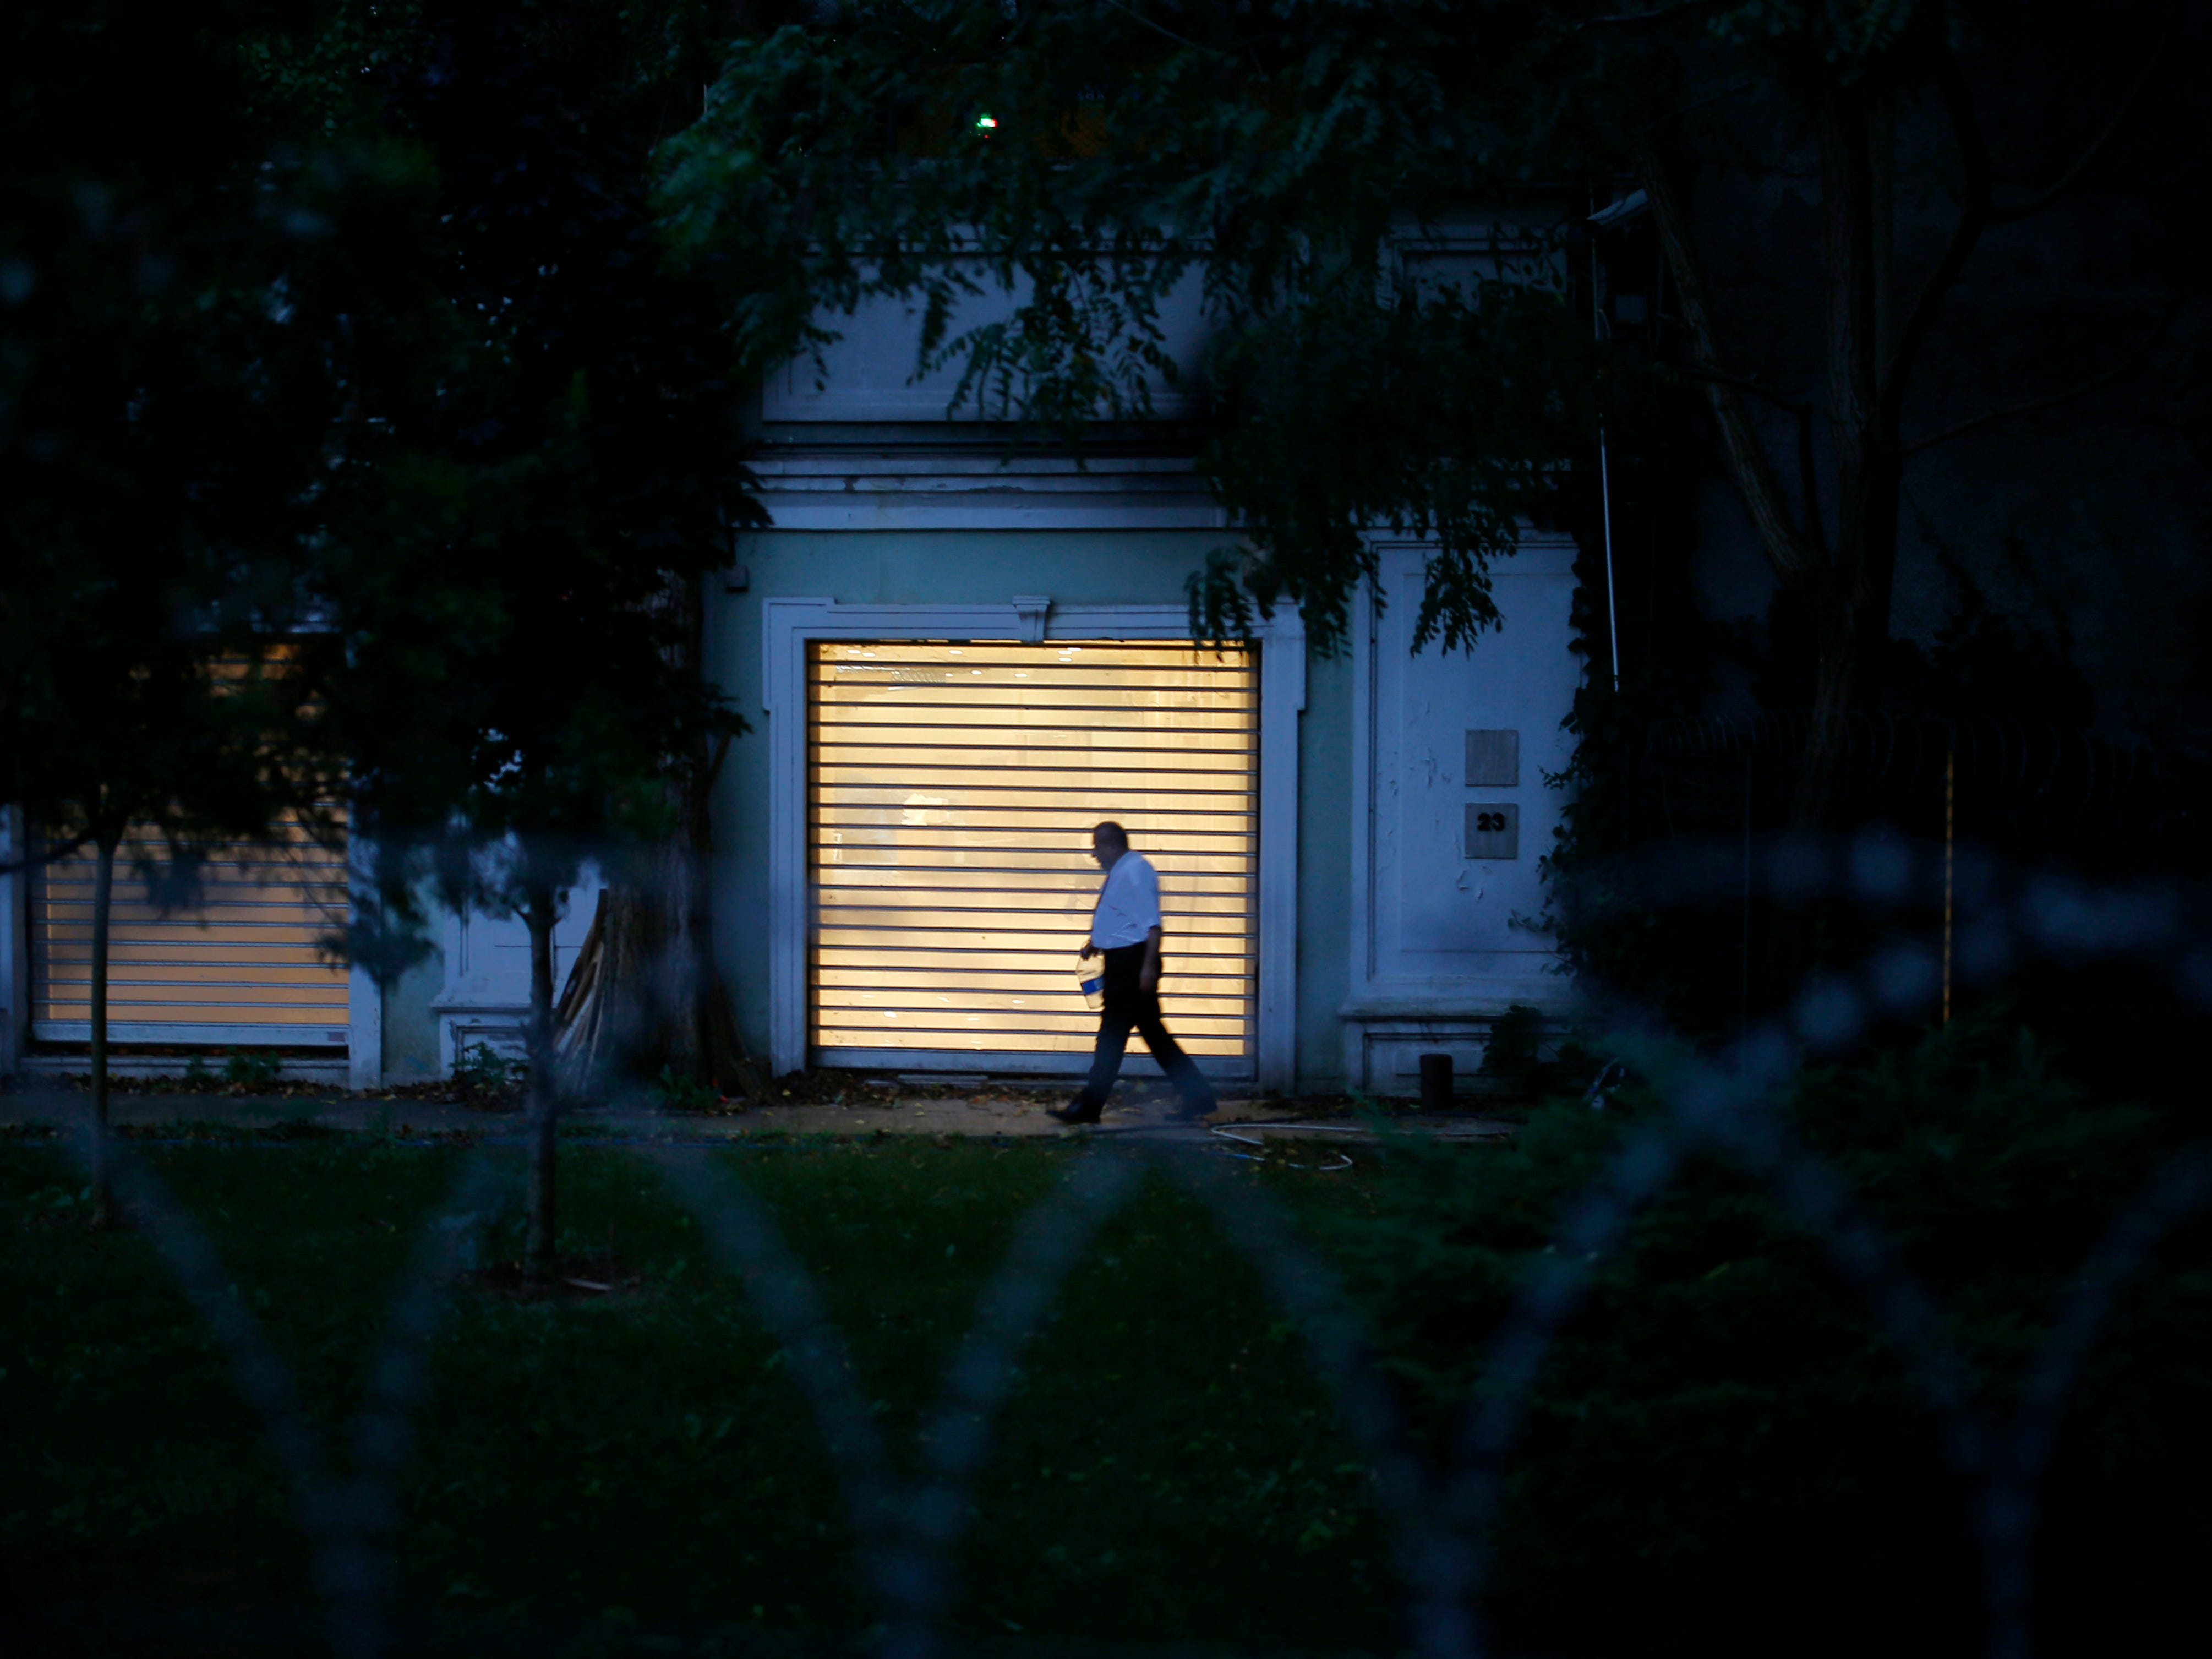 A Turkish police officer walks inside the property of the residence of the Saudi consul General Mohammed al-Otaibi as Turkish police conduct a search after the disappearance and alleged slaying of writer Jamal Khashoggi, in Istanbul, Wednesday, Oct. 17, 2018.